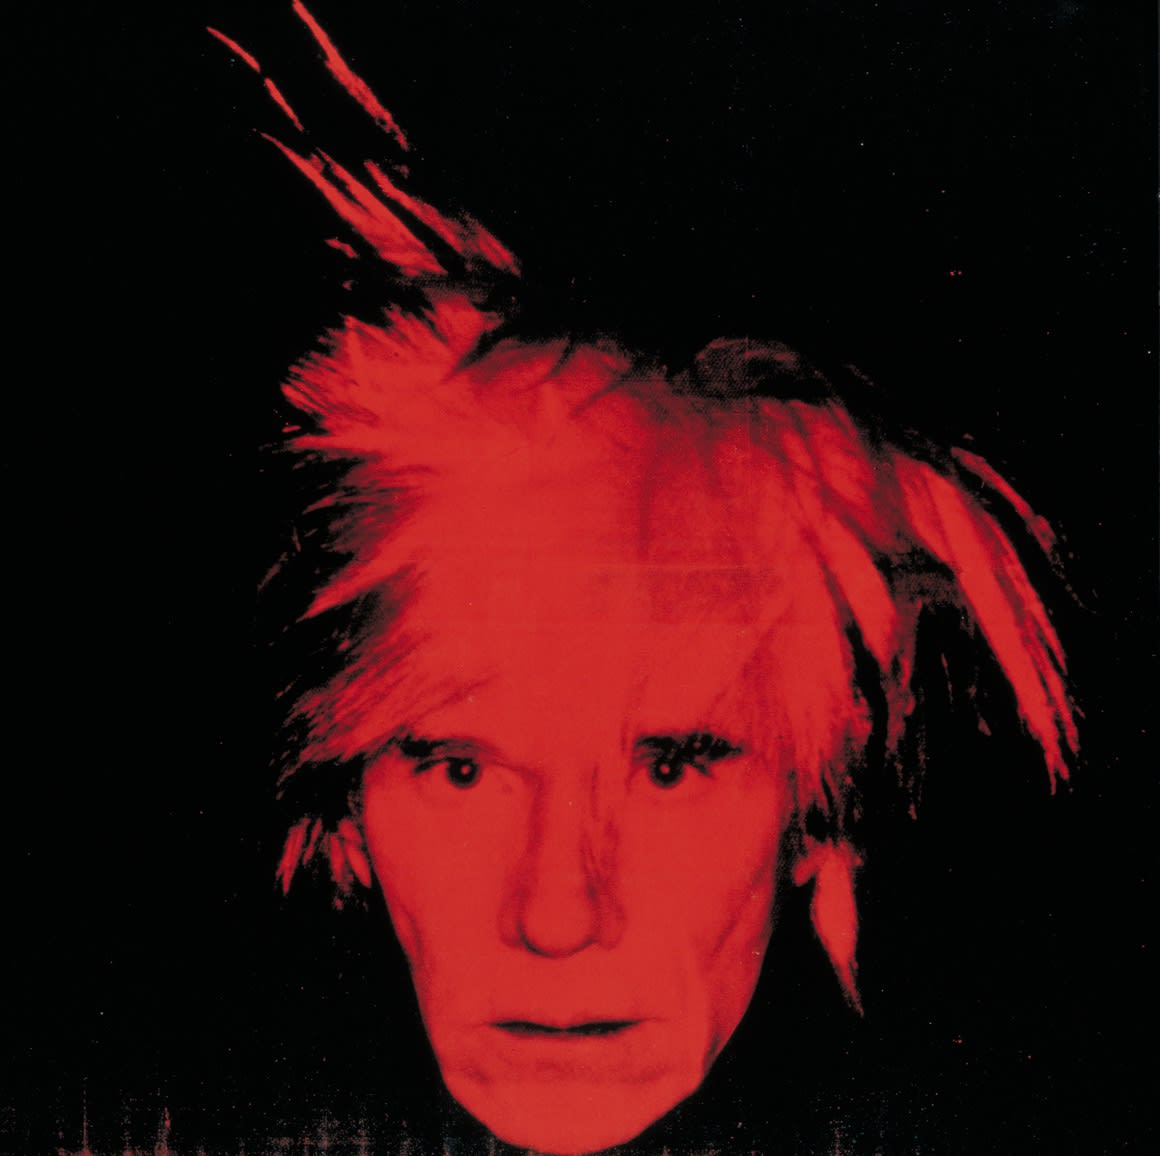 Andy Warhol Retrospective | Tate Modern, London, 12 March - 6 September 2020